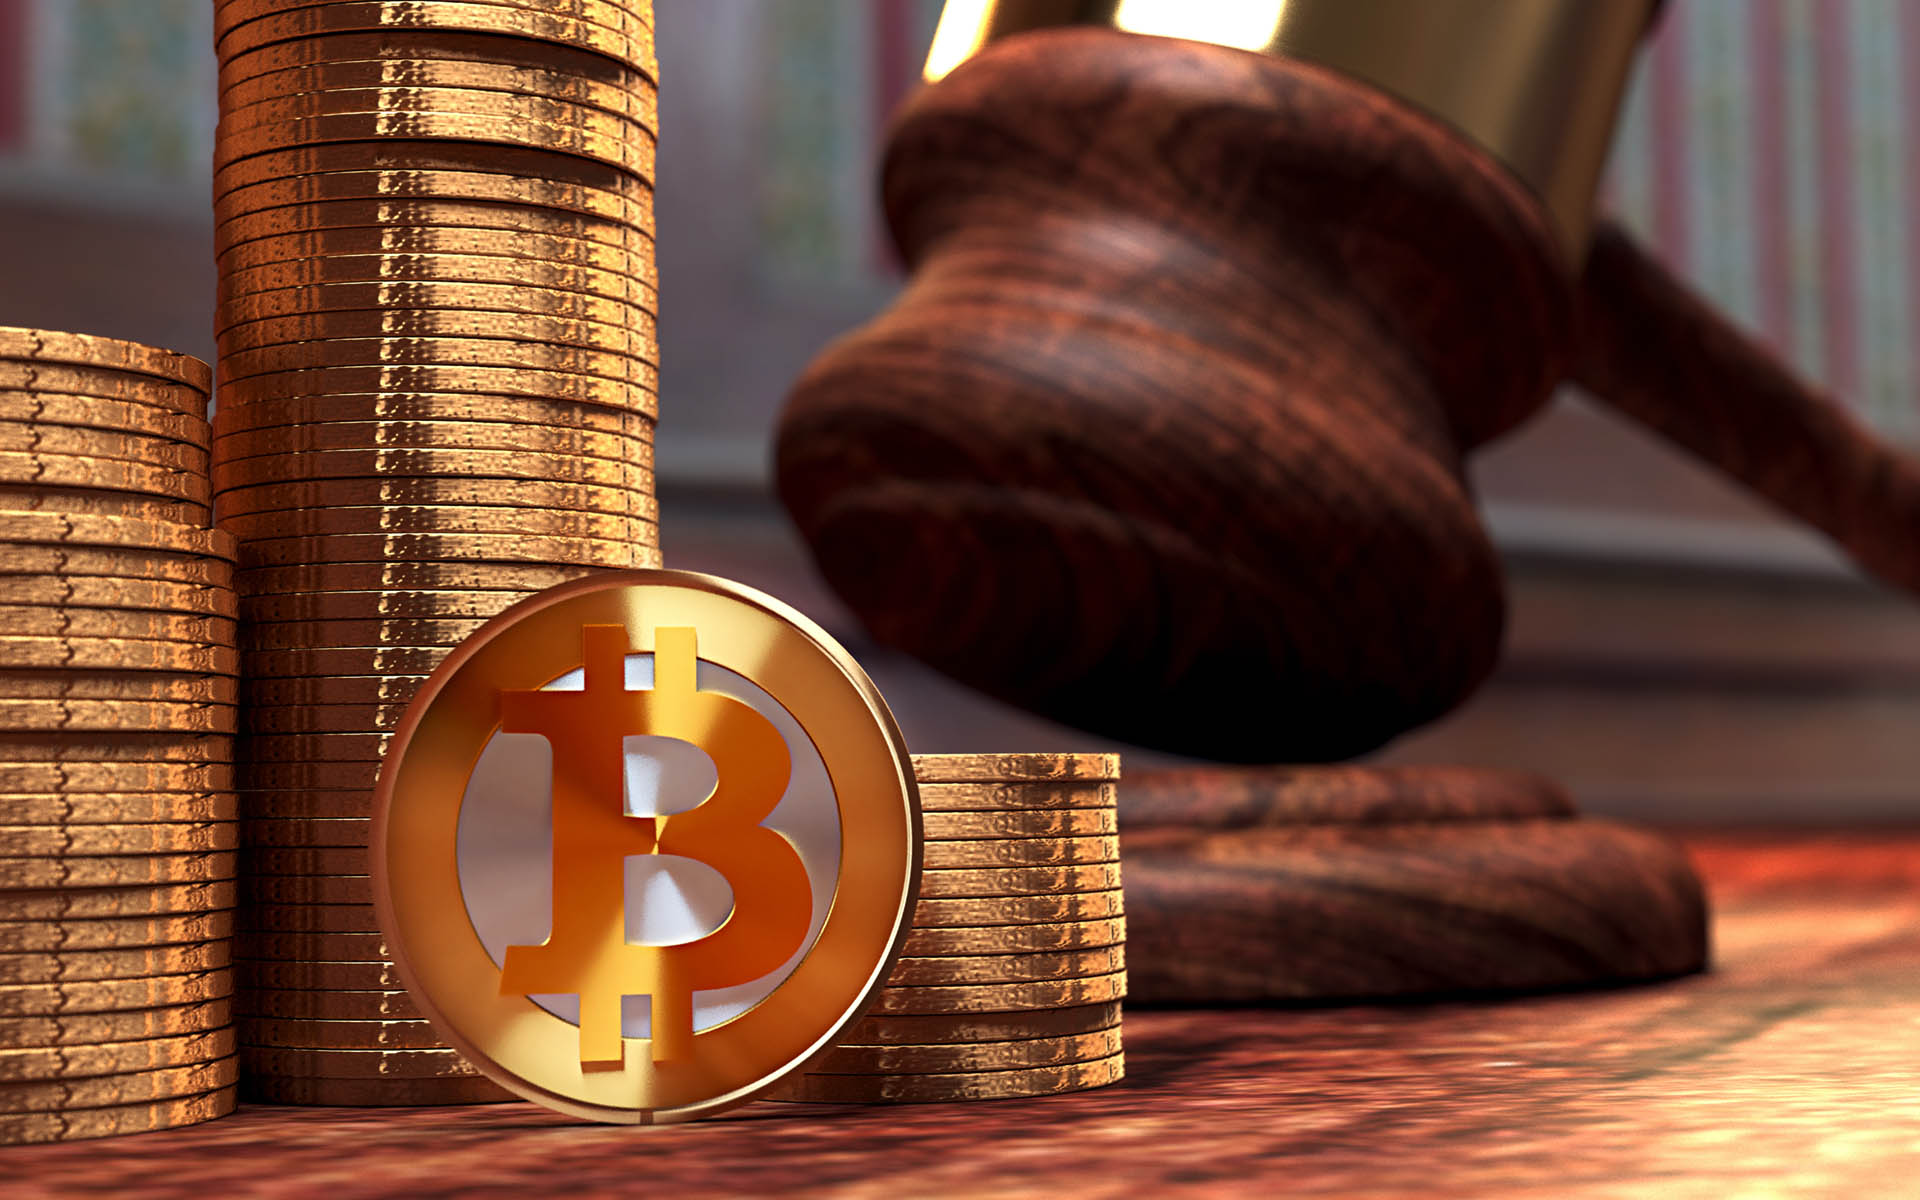 How To Buy Bitcoins Legally?